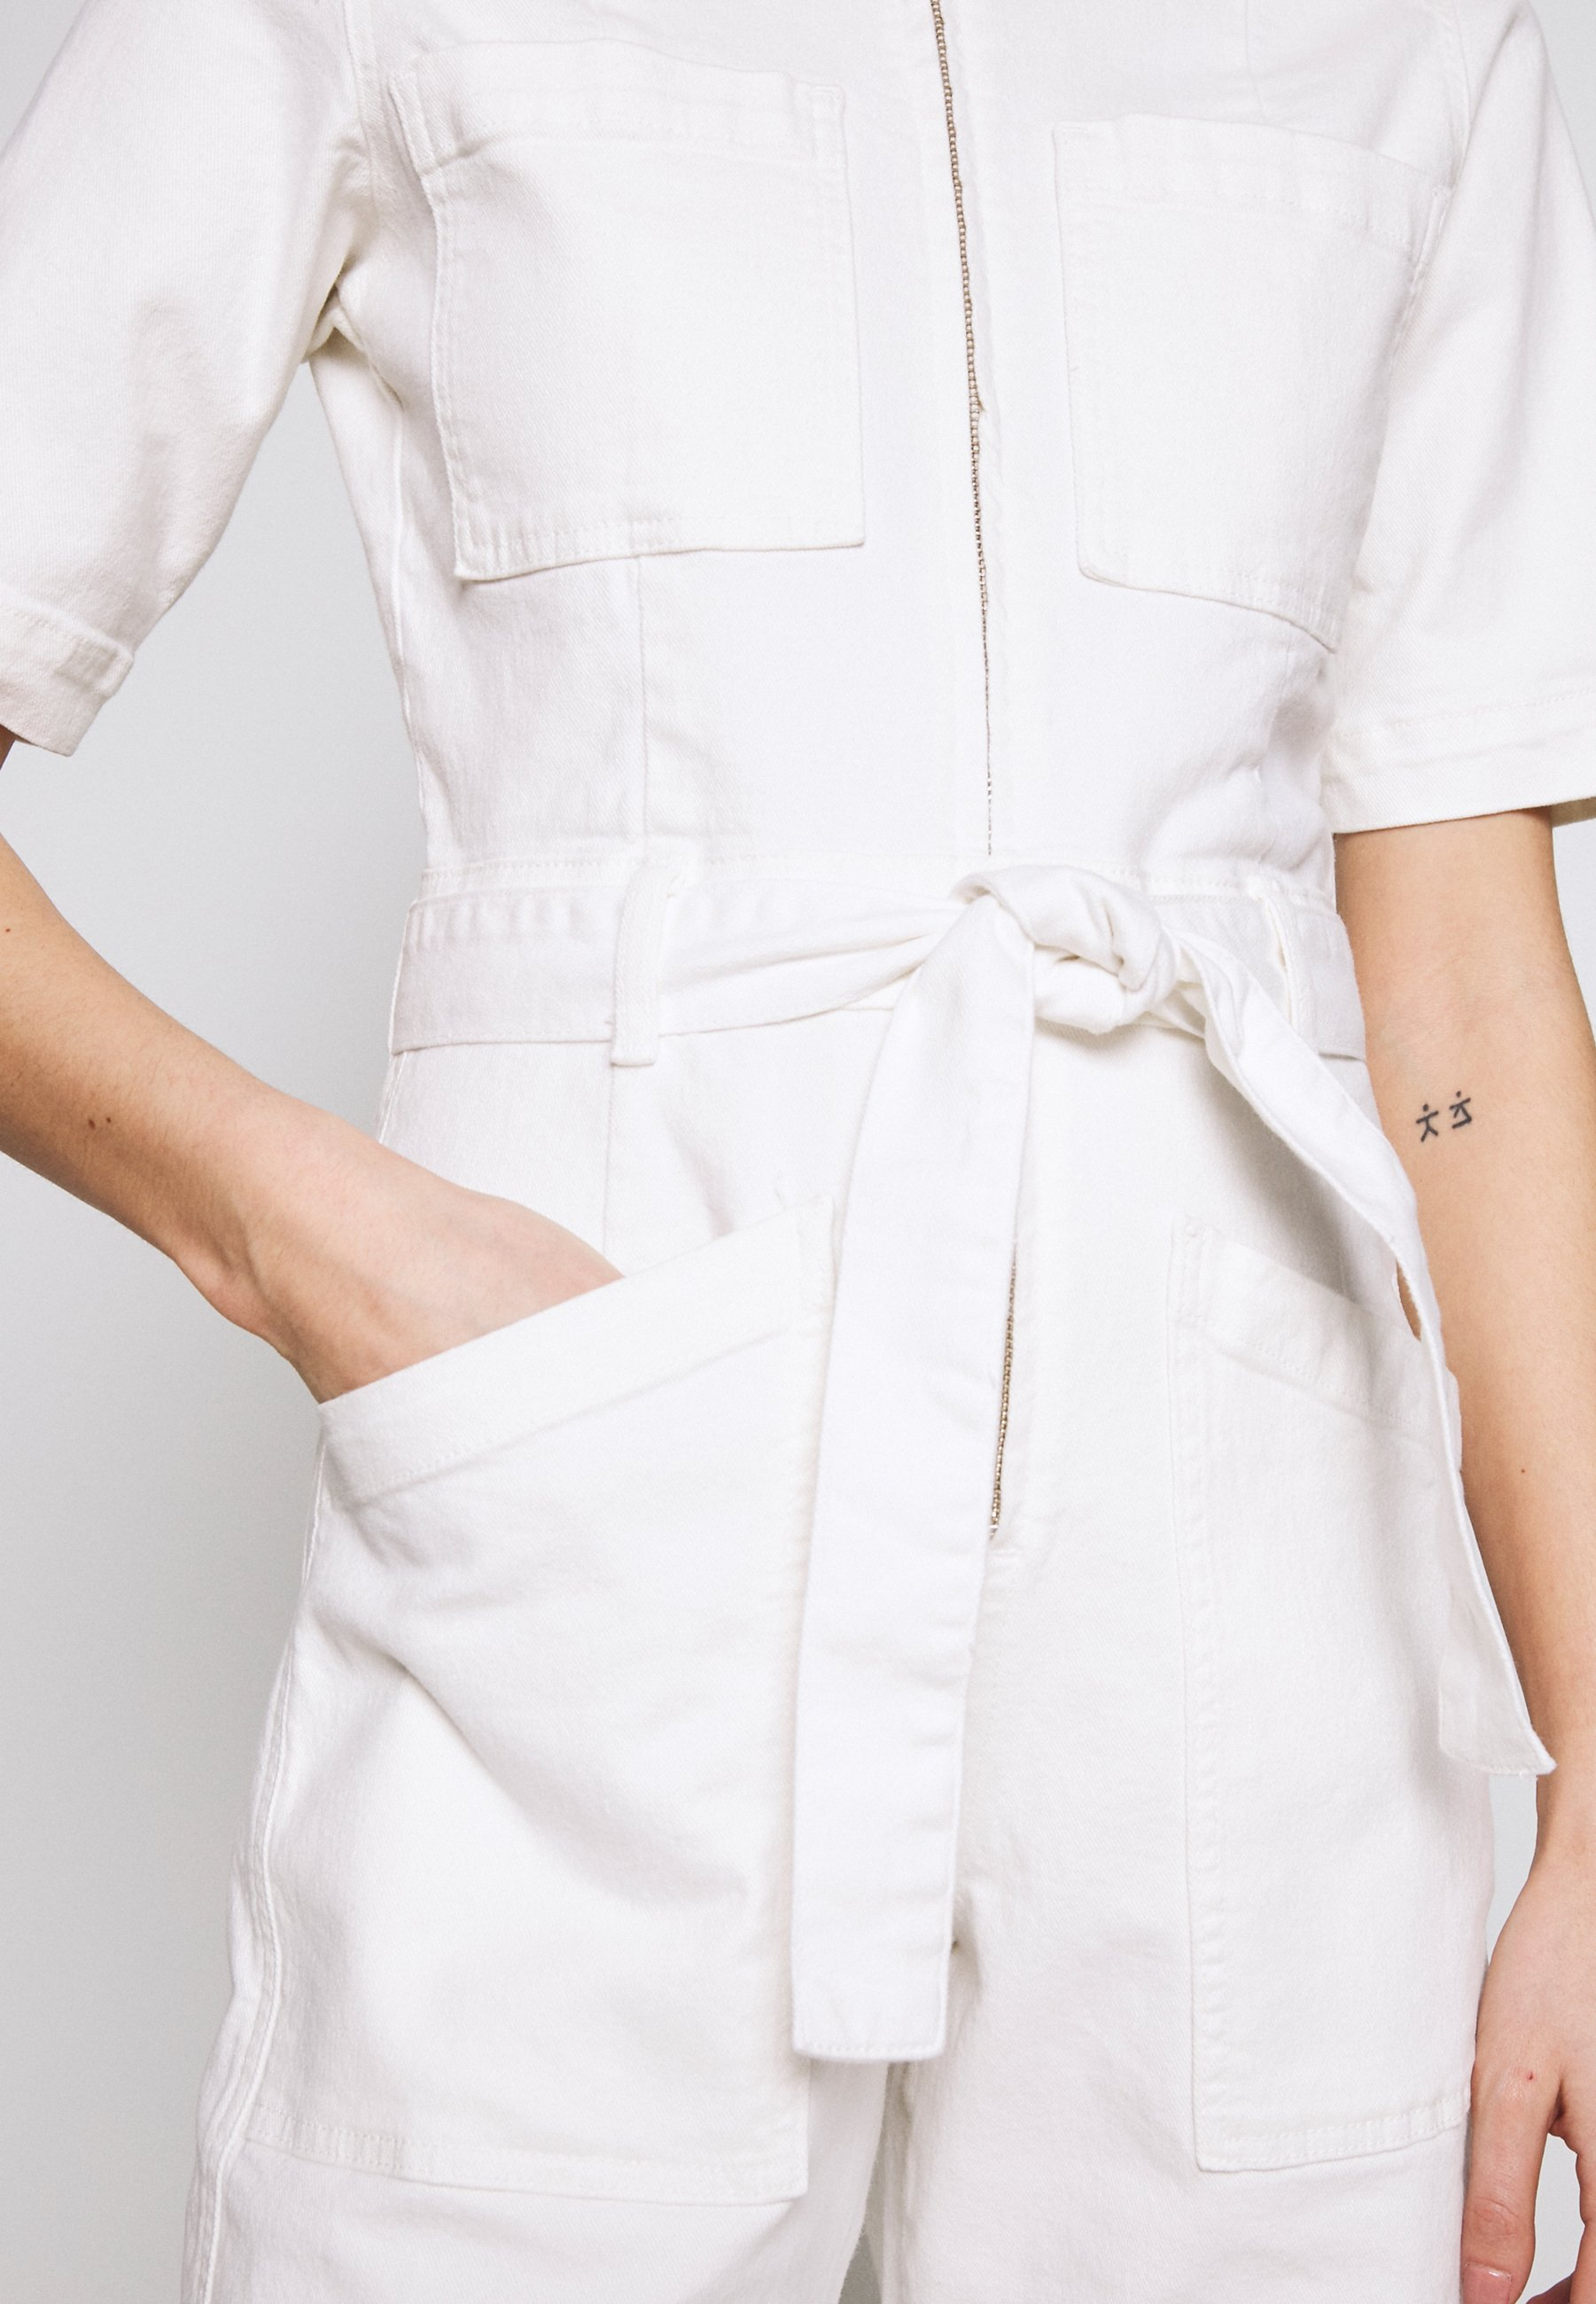 Bdg Urban Outfitters Belted Boilersuit - Combinaison Stone